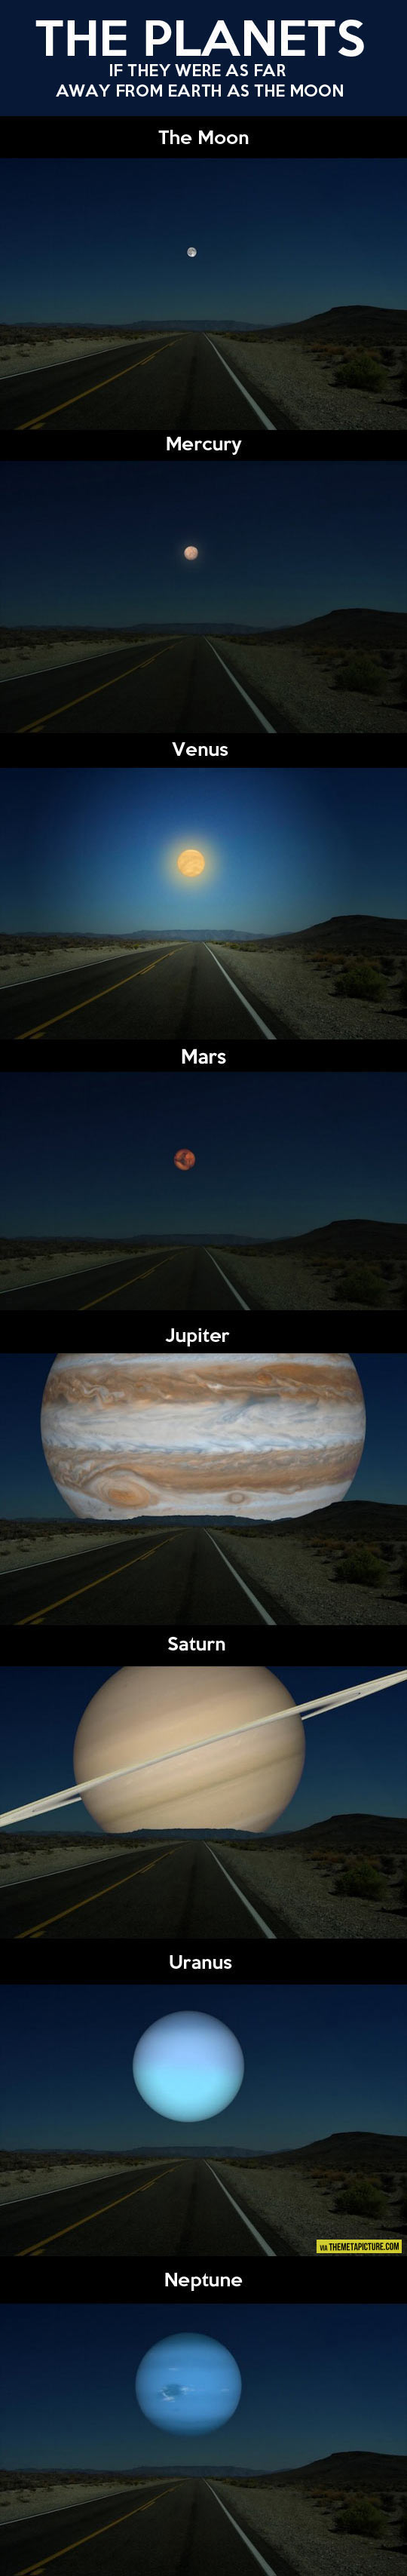 If Planets Were As Far Away From Earth As The Moon